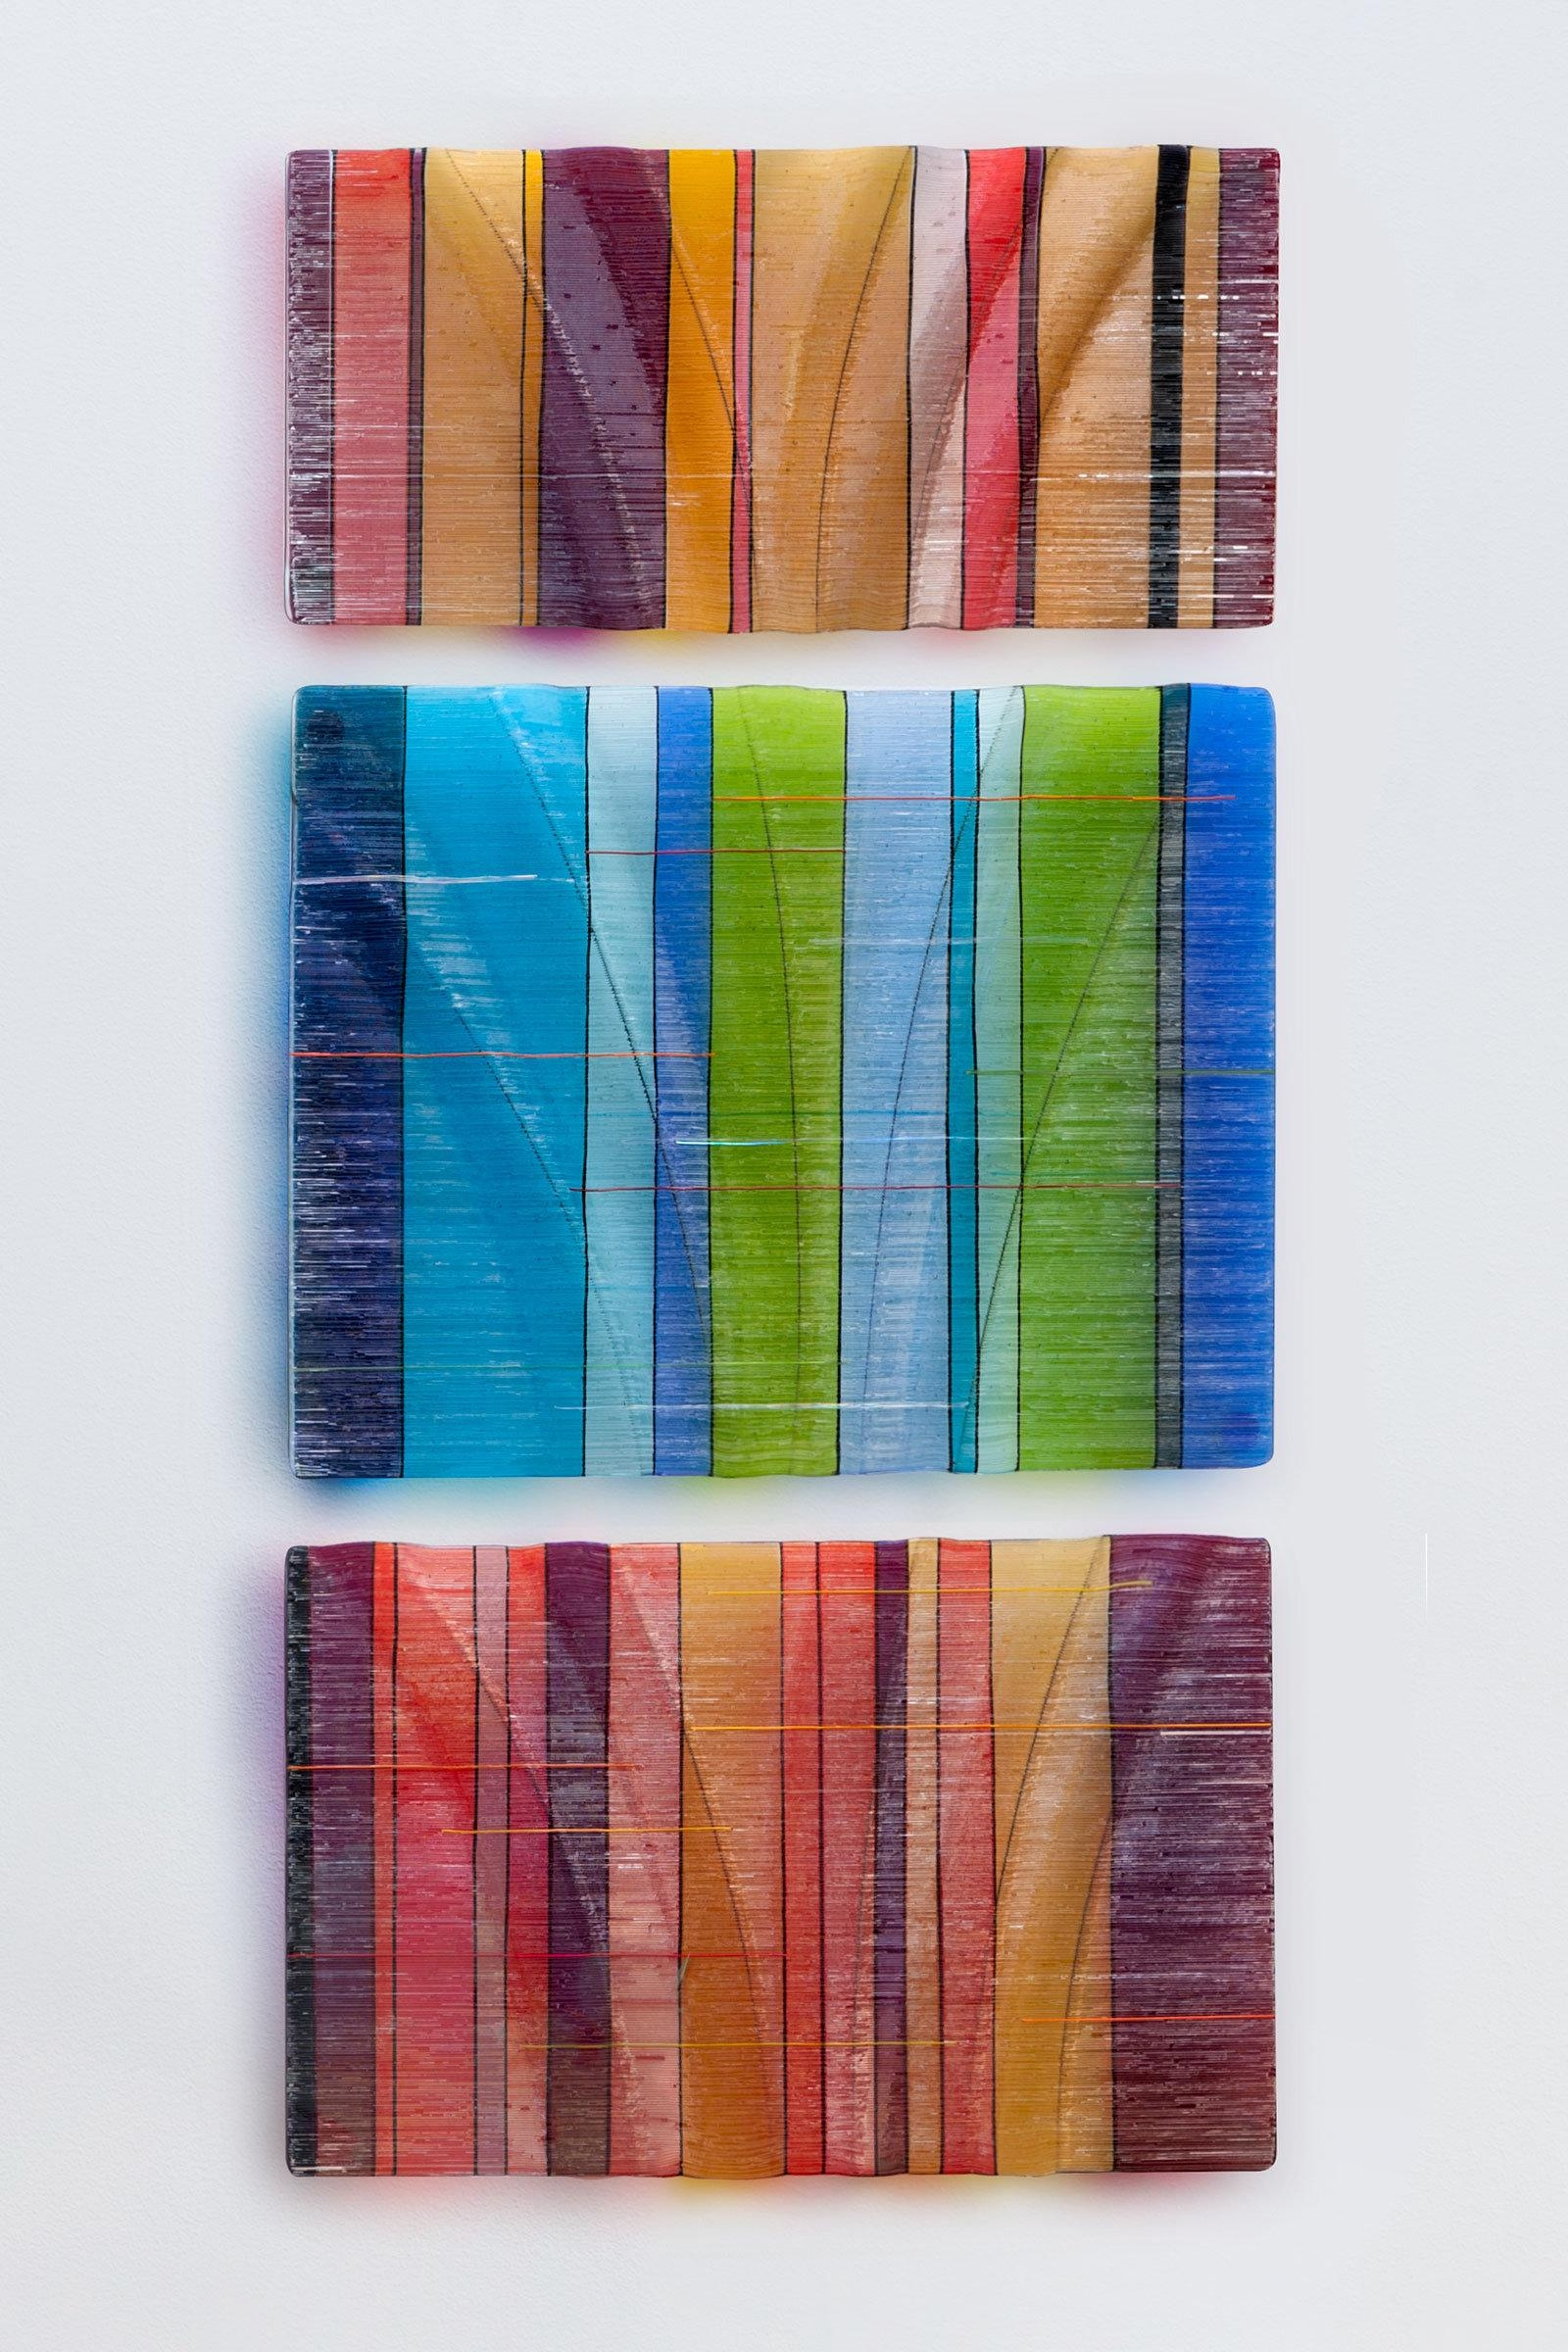 Glass Wall Artnorth American Artists | Artful Home In Fused Glass And Metal Wall Art (Image 13 of 20)